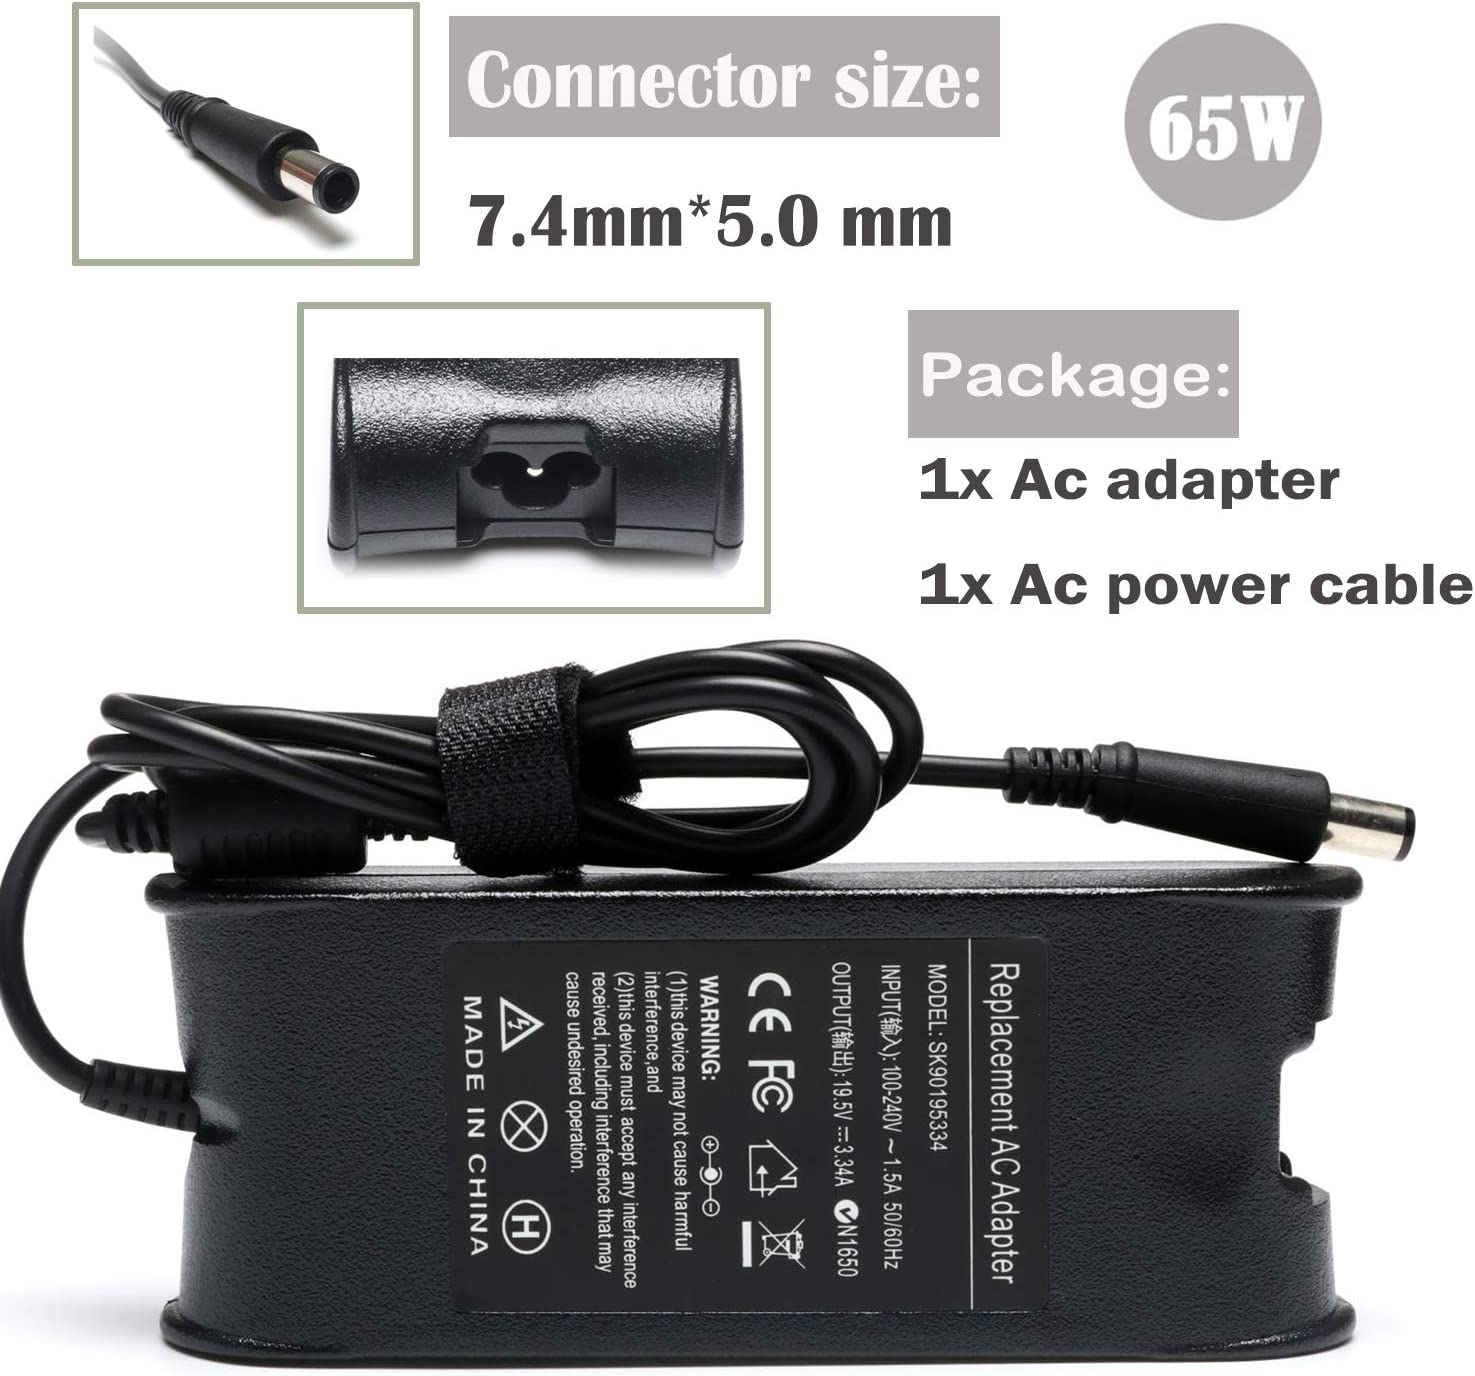 65W 19.5V 3.34A Laptop Ac Adapter Charger for Dell Latitude3330 3440 3340 3540 3450;E6420 E6430 E6520 E6530 E6540 E7240 E7250 E7440; Inspiron 15 3521 3520 3537 5521 15R 7520 Power Supply Cord Plug